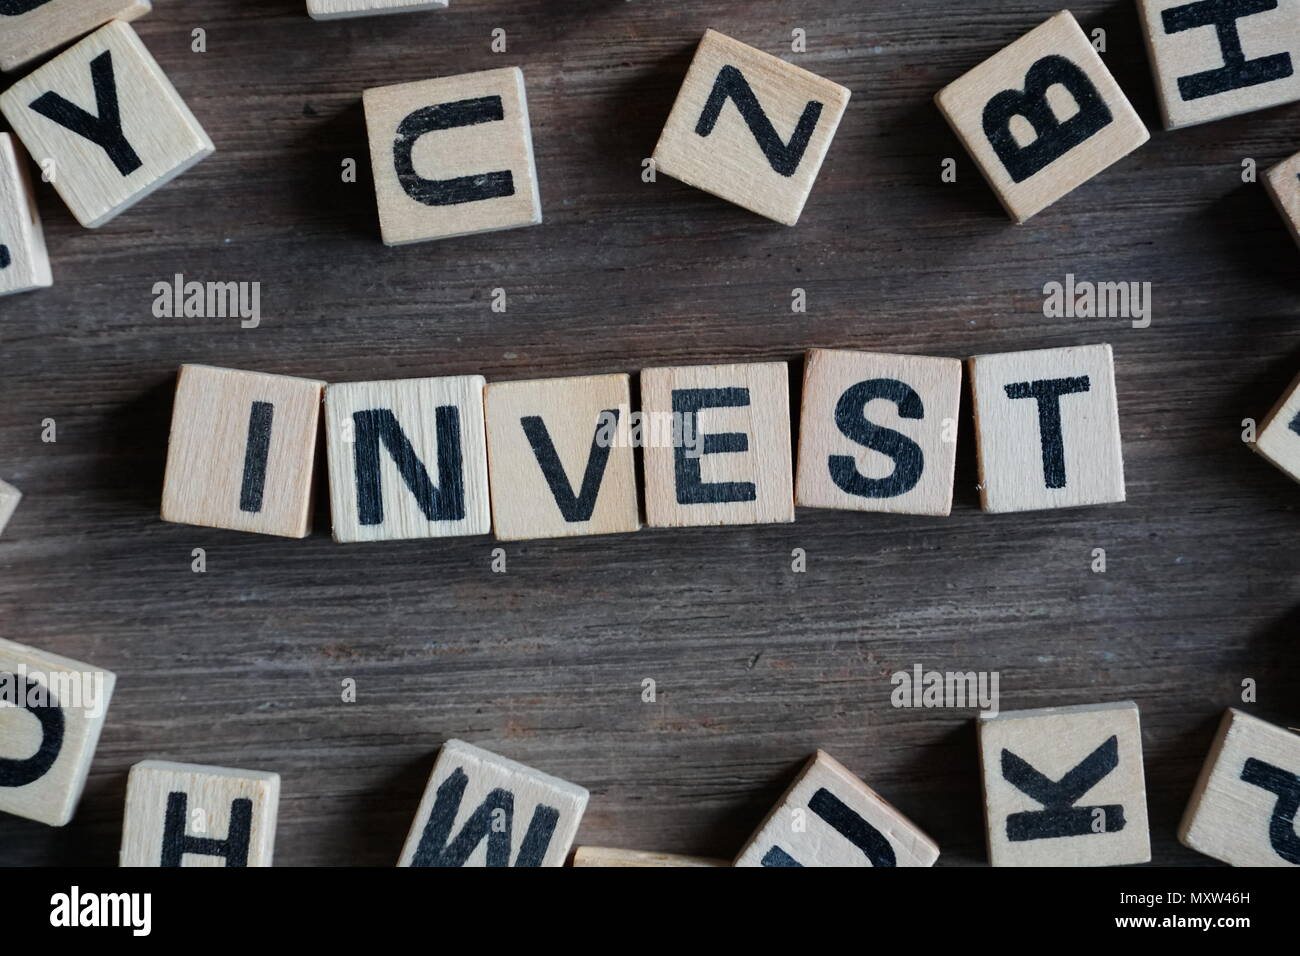 Word 'INVEST' on cube dice on wood table - Stock Image